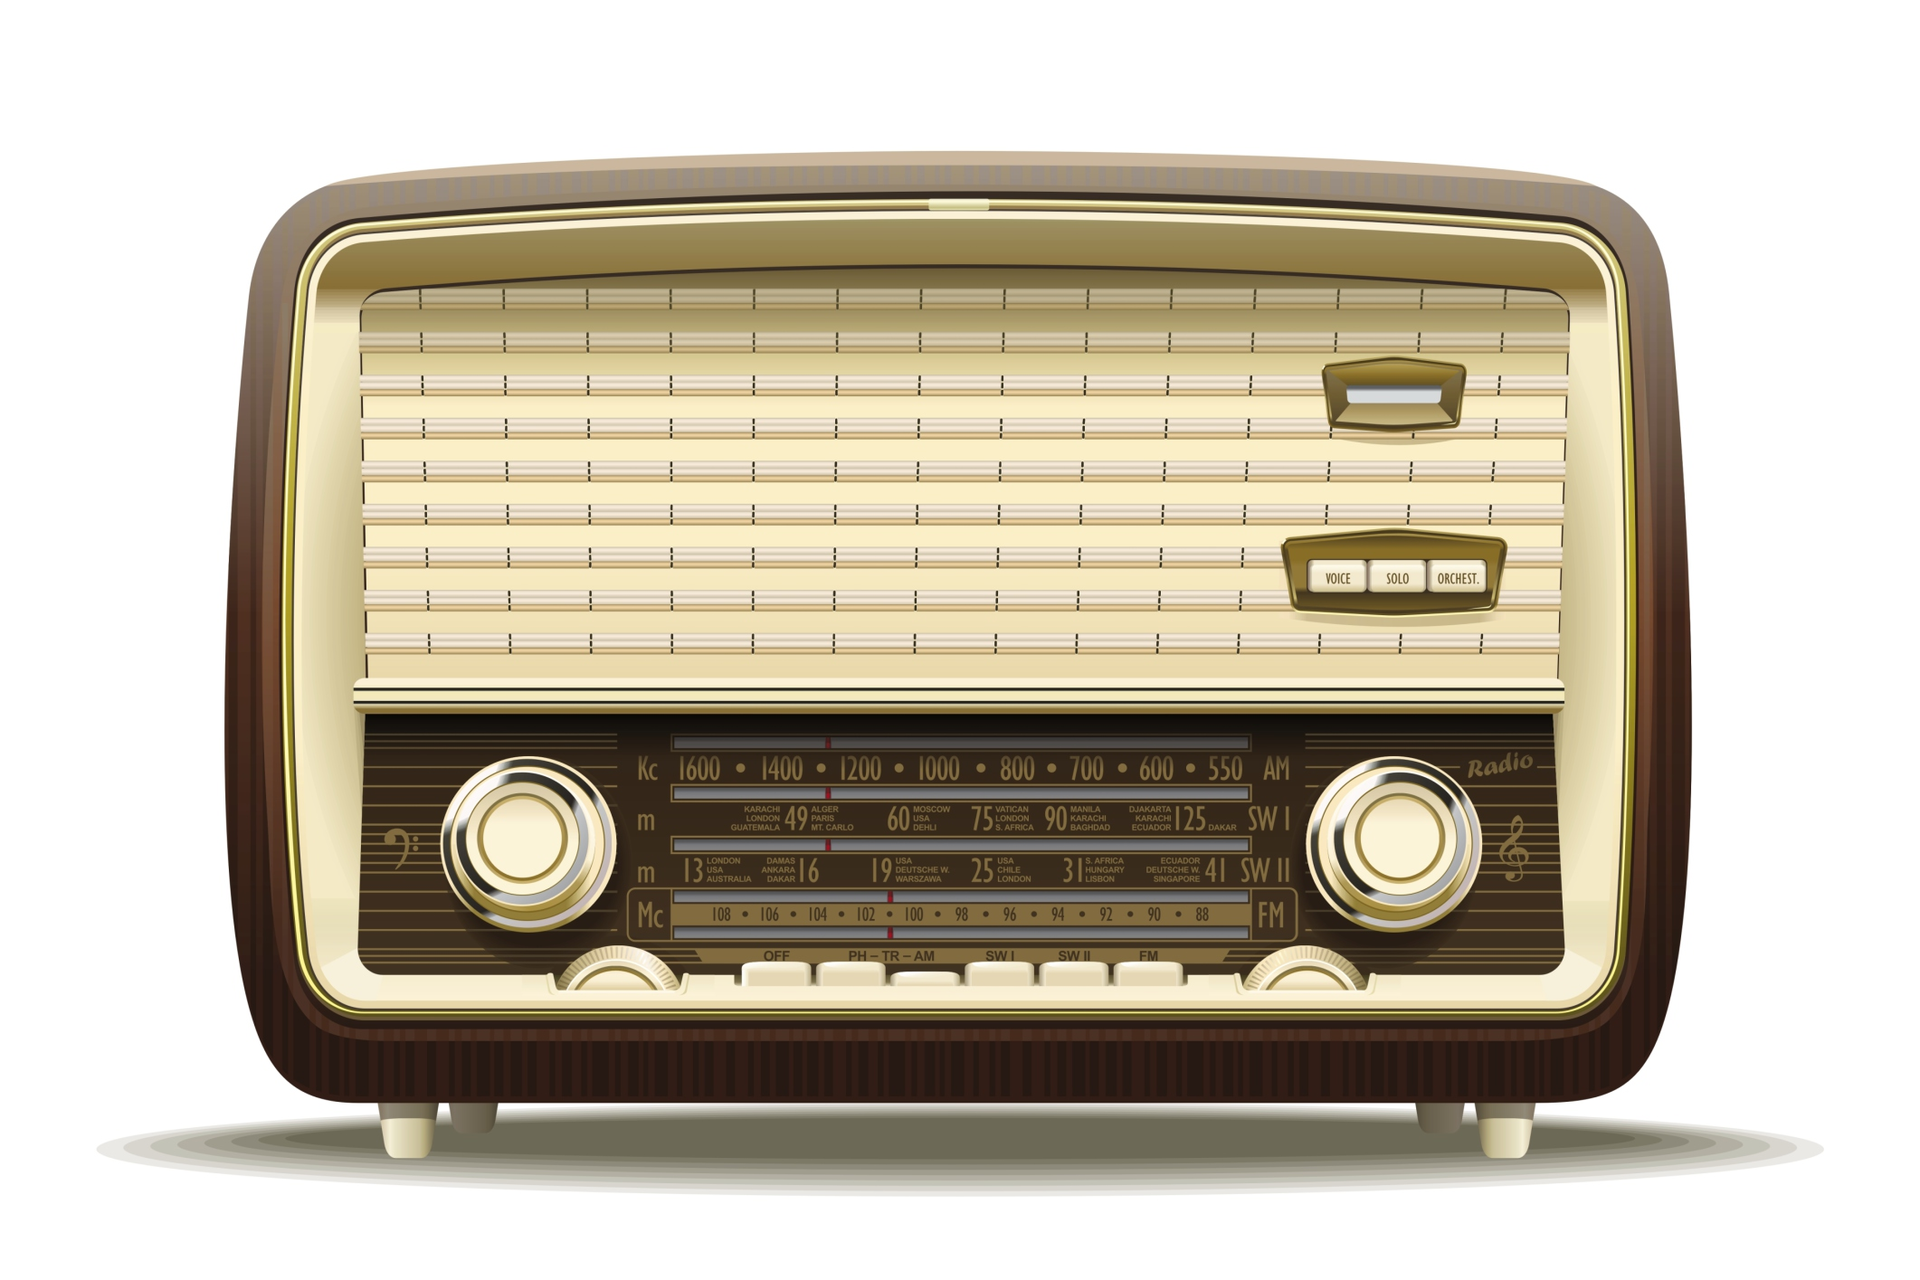 Production factory general purpose radio stations and radios